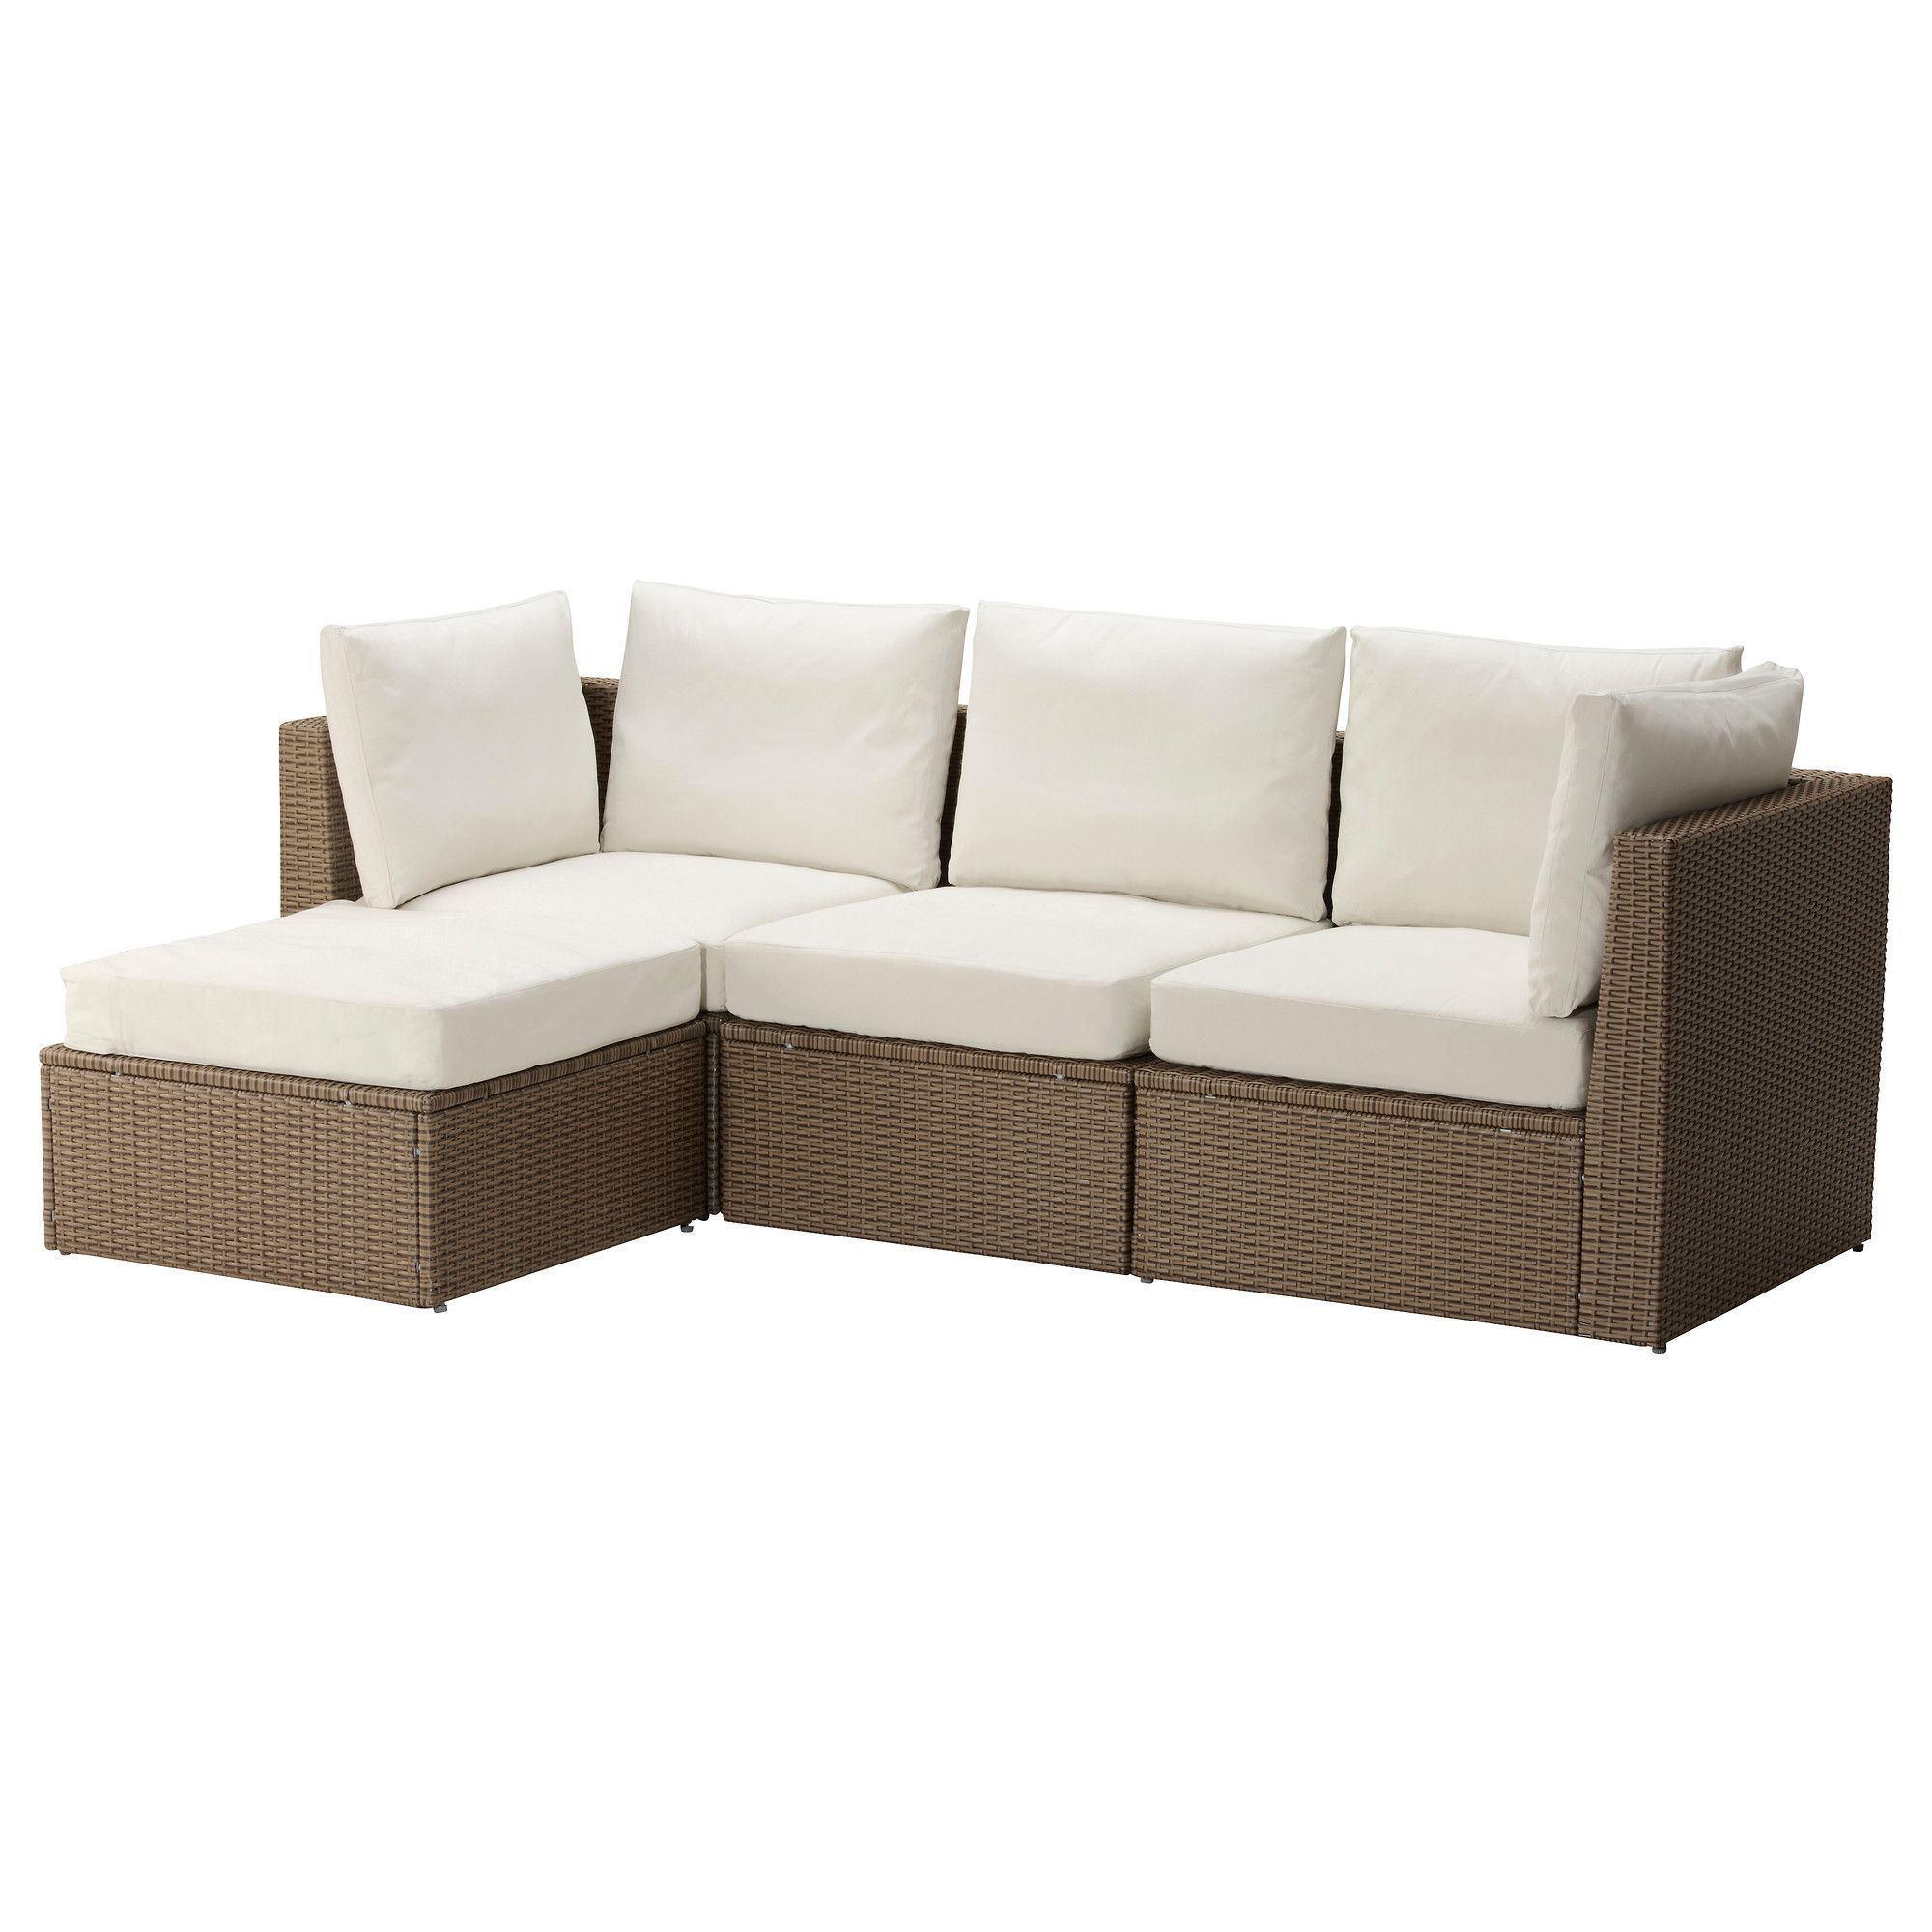 7 Seater Customized American Suede Sofa nairobi furniture